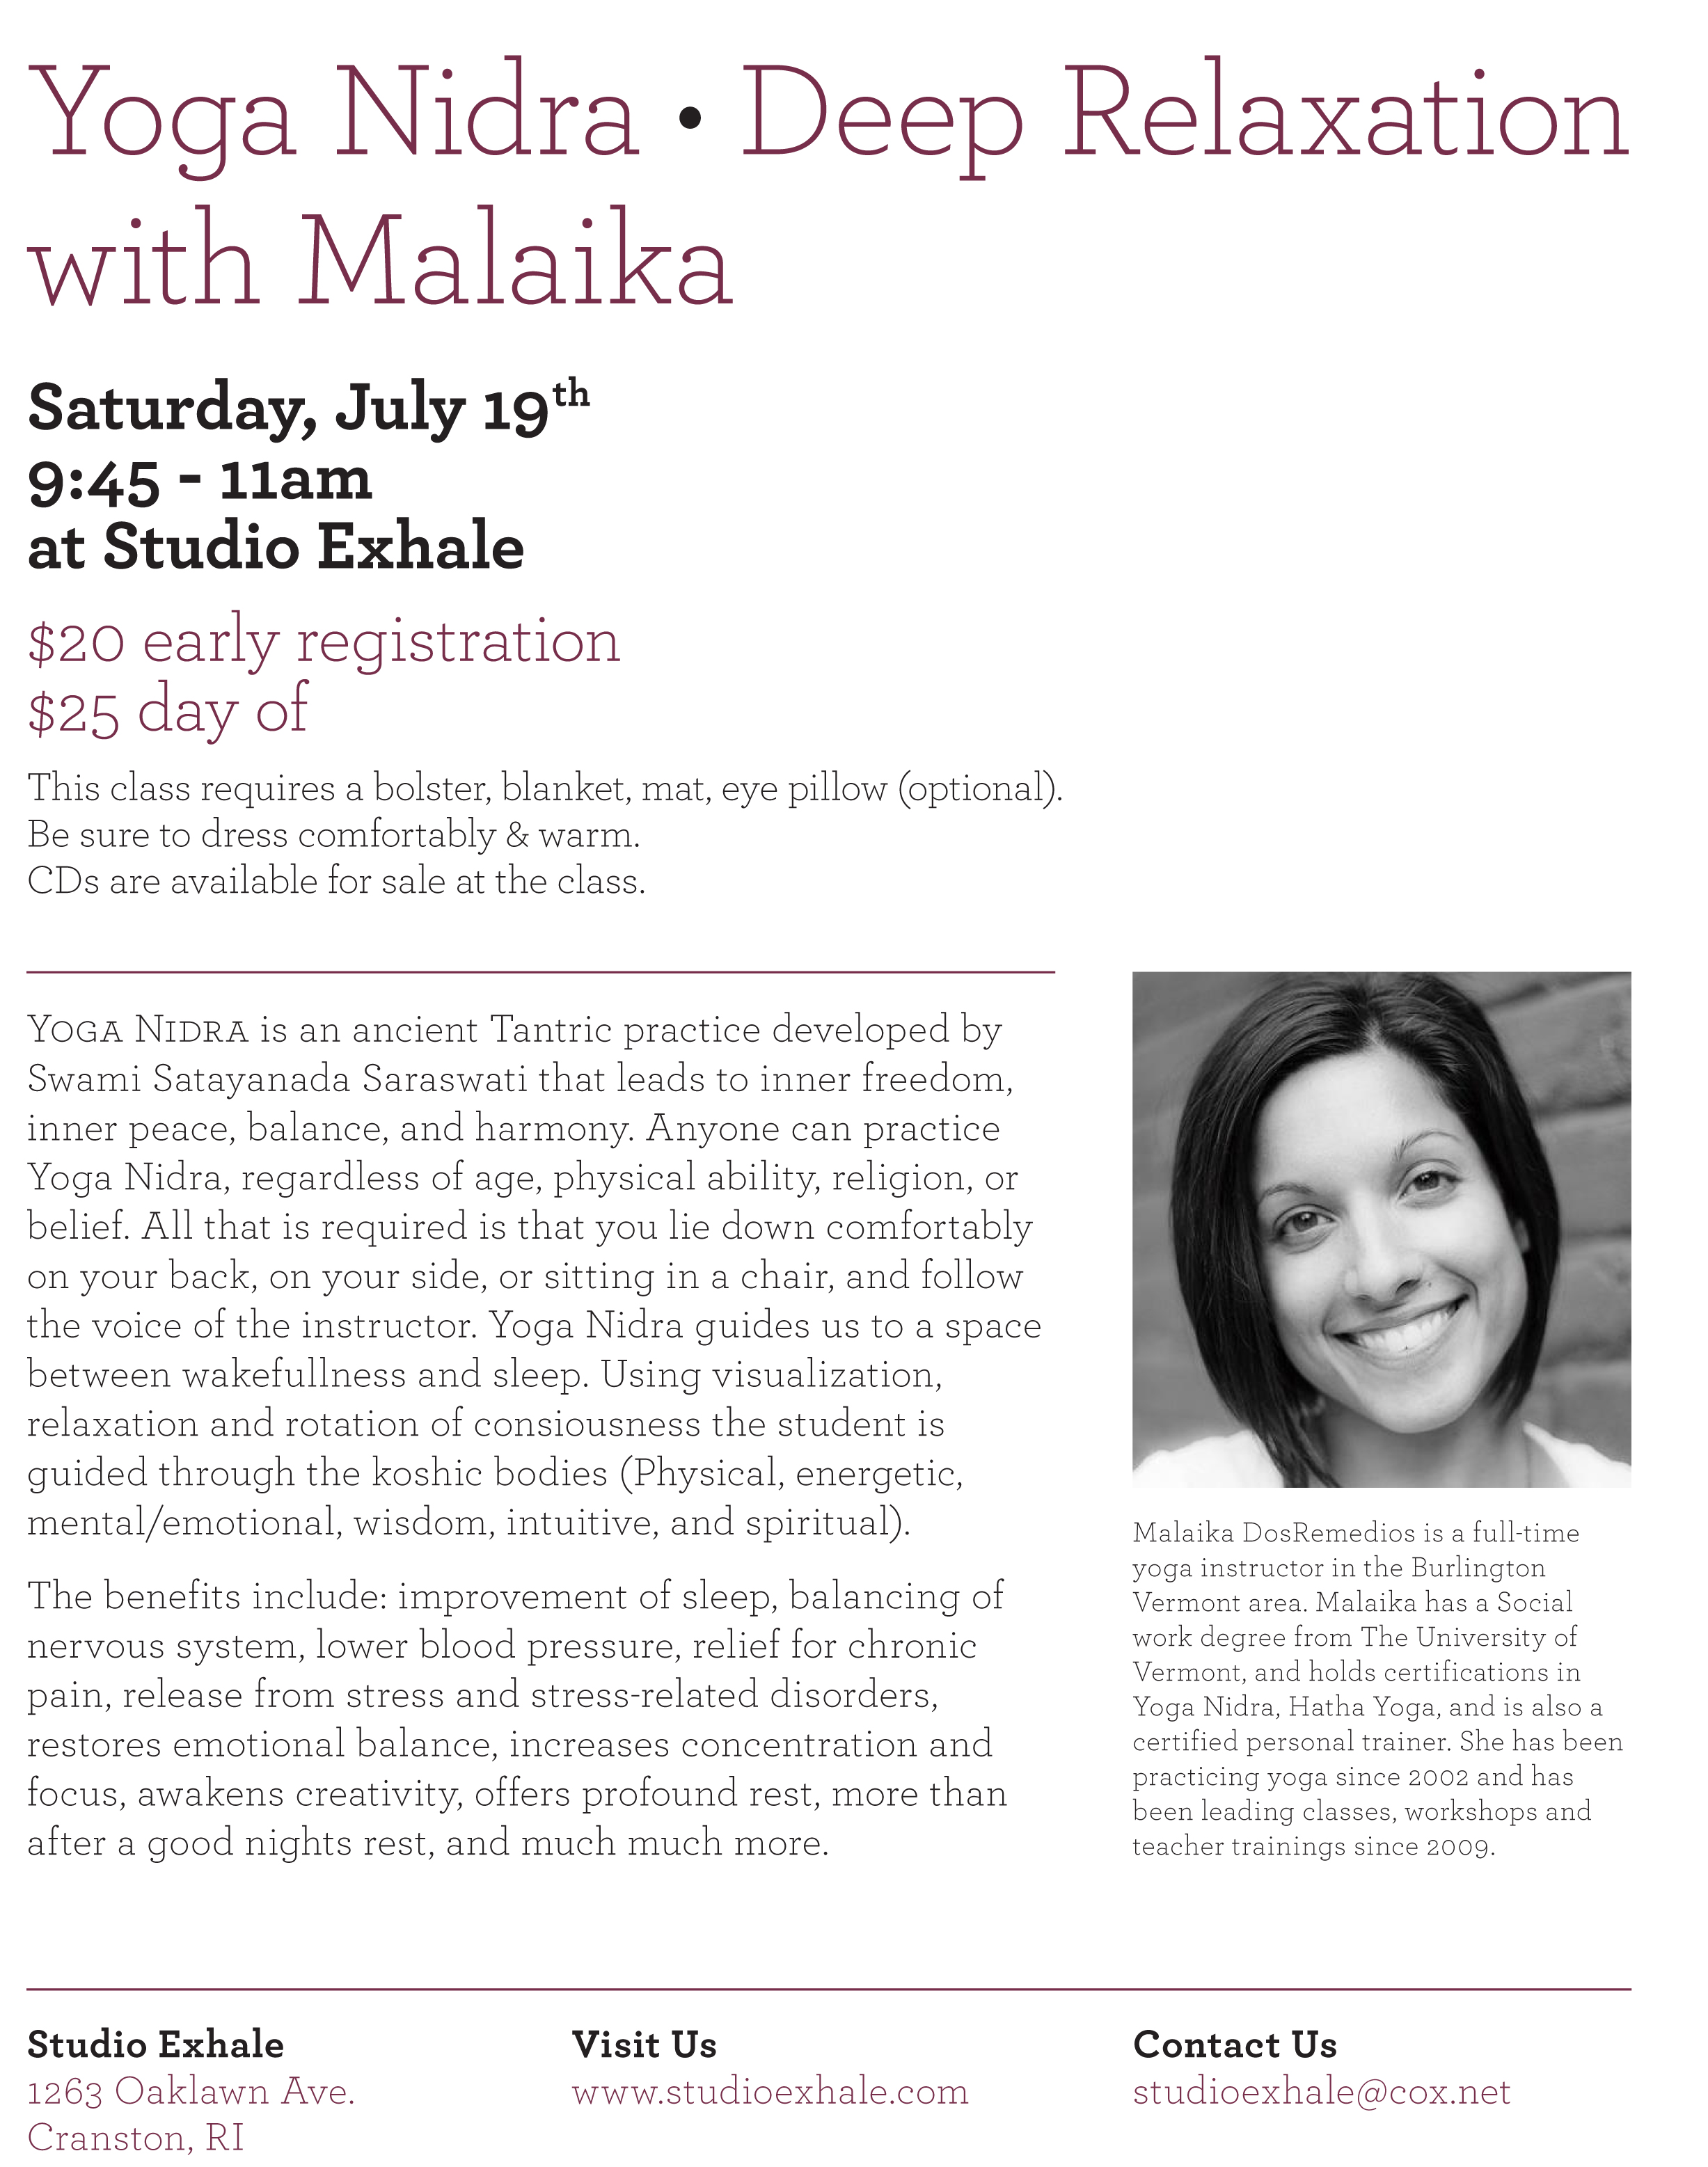 malaika_exhale_flyer_7-19